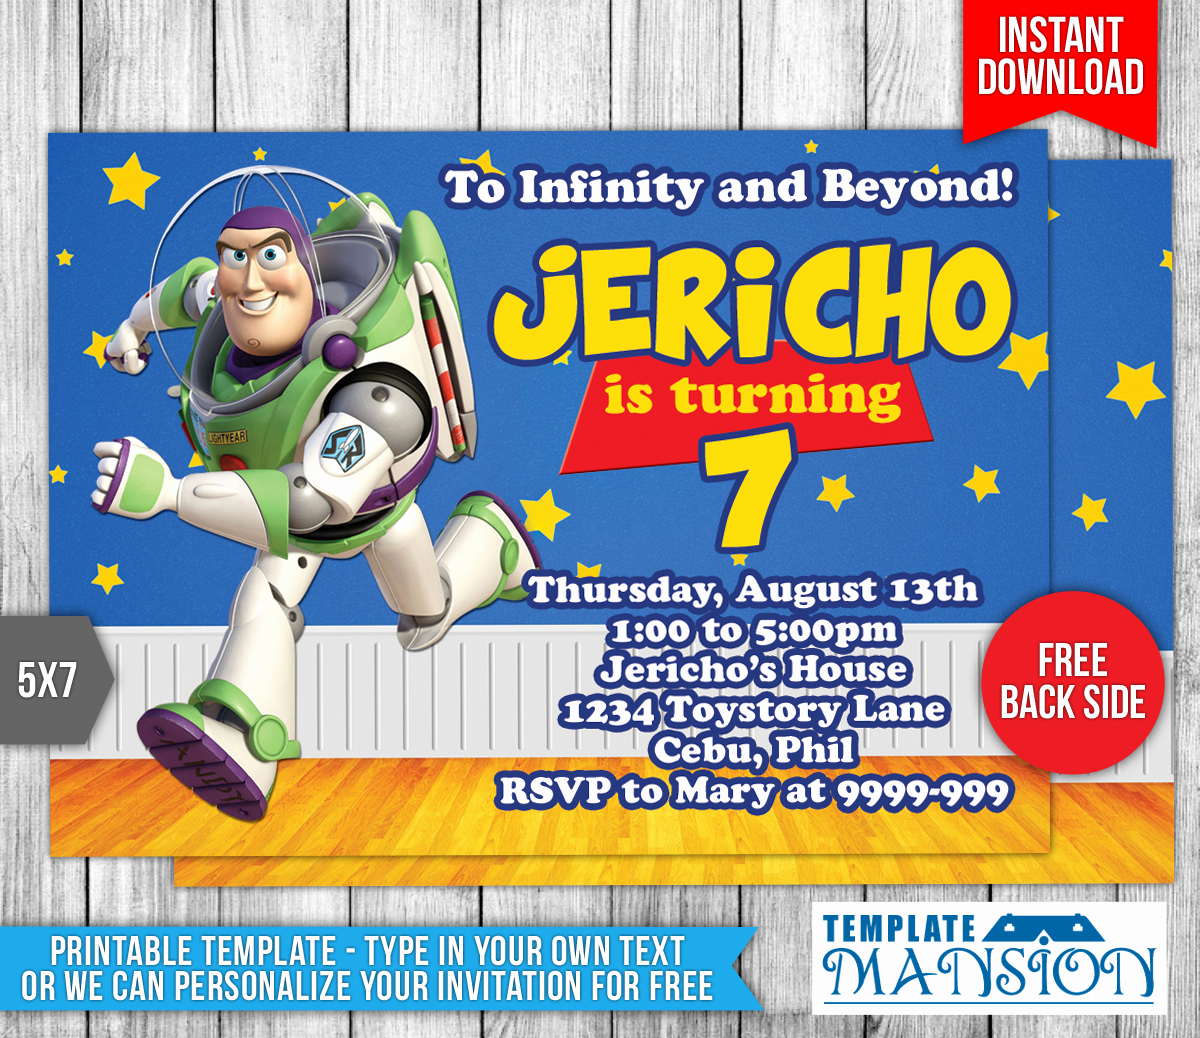 Toy Story Invitation Template Download New Buzz Lightyear toy Story Birthday Invitation by